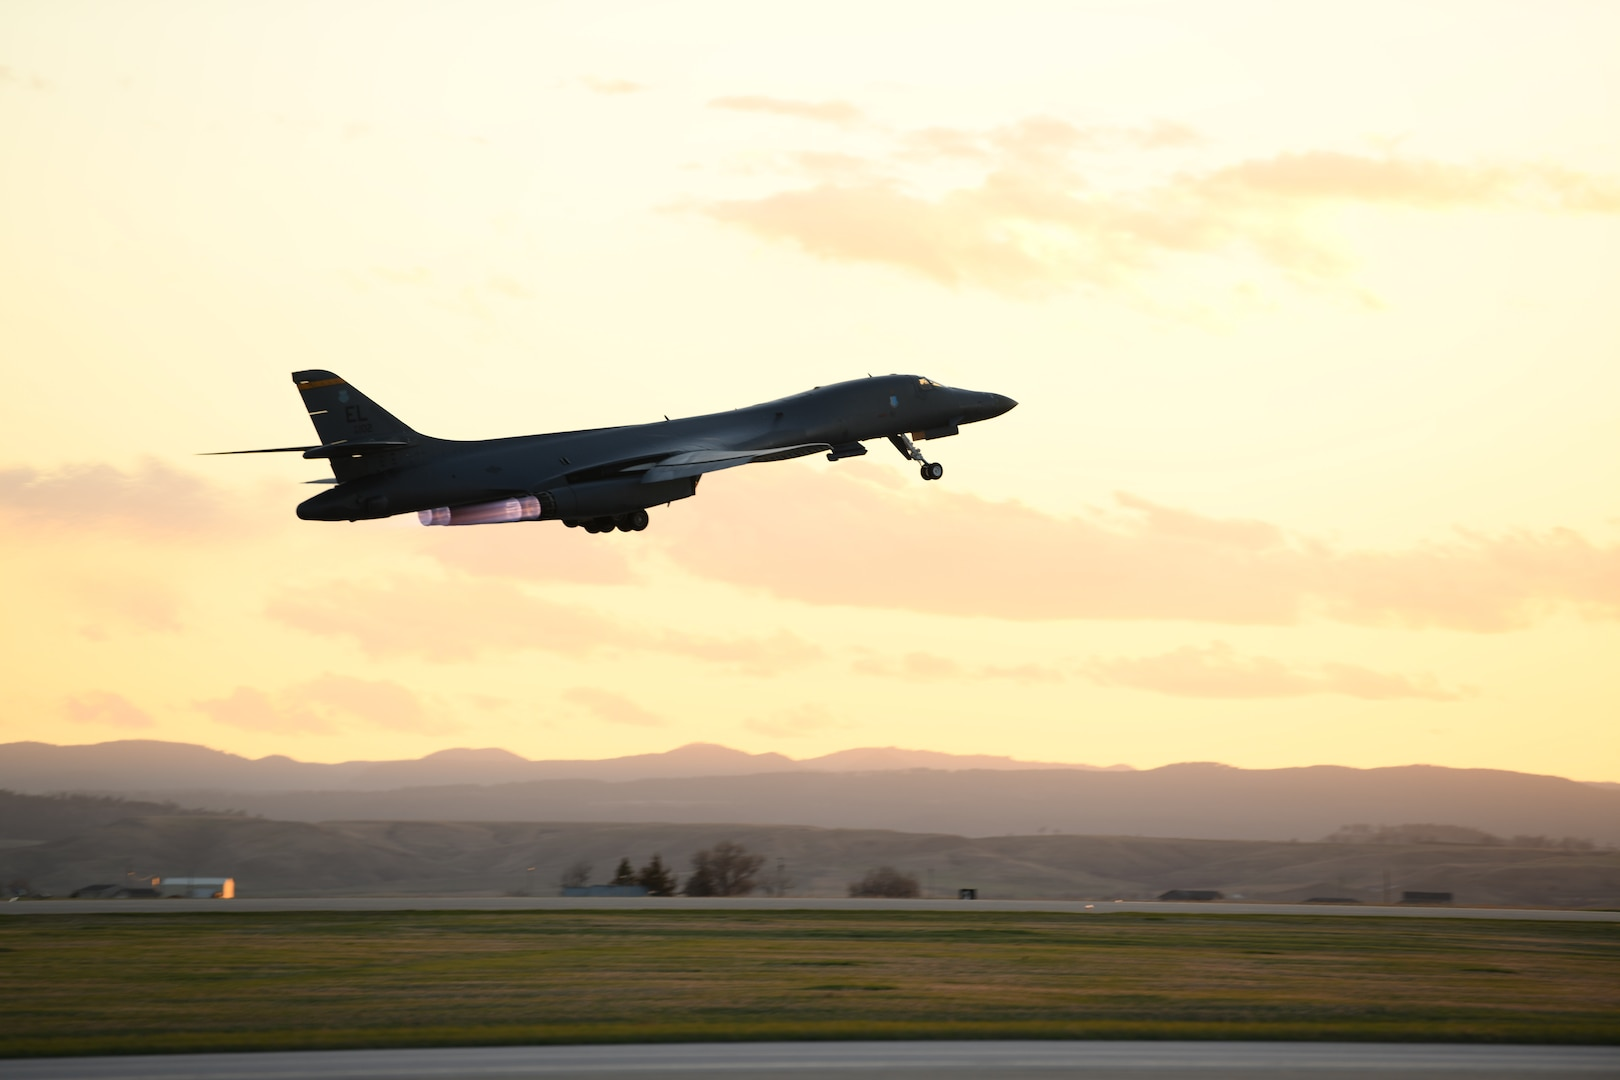 A B-1B Lancer assigned to the 28th Bomb Wing launches from Ellsworth Air Force Base, S.D., April 28, 2020, to support a Bomber Task Force mission in the Indo-Pacific region. This operation demonstrates the U.S. Air Force's dynamic force employment model in line with the National Defense Strategy's objectives of strategic predictability and operational unpredictability. (U.S. Air Force photo by Senior Airman Nicolas Erwin)